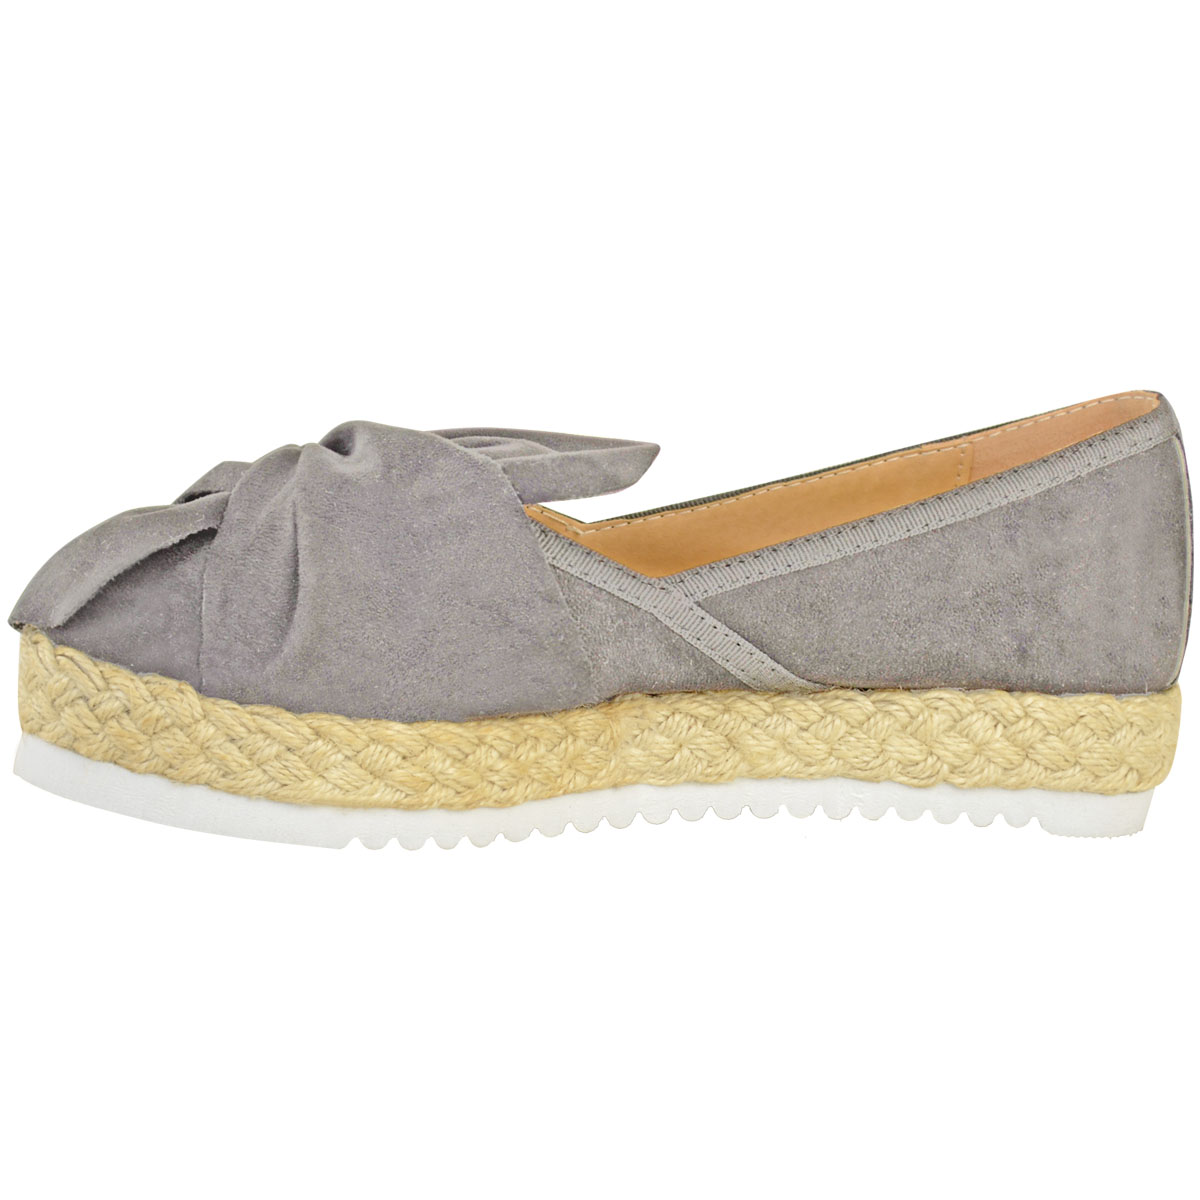 Womens-Ladies-Espadrilles-Flat-Pom-Pom-Sandals-Slip-On-Strappy-Comfy-Size-Shoes thumbnail 40